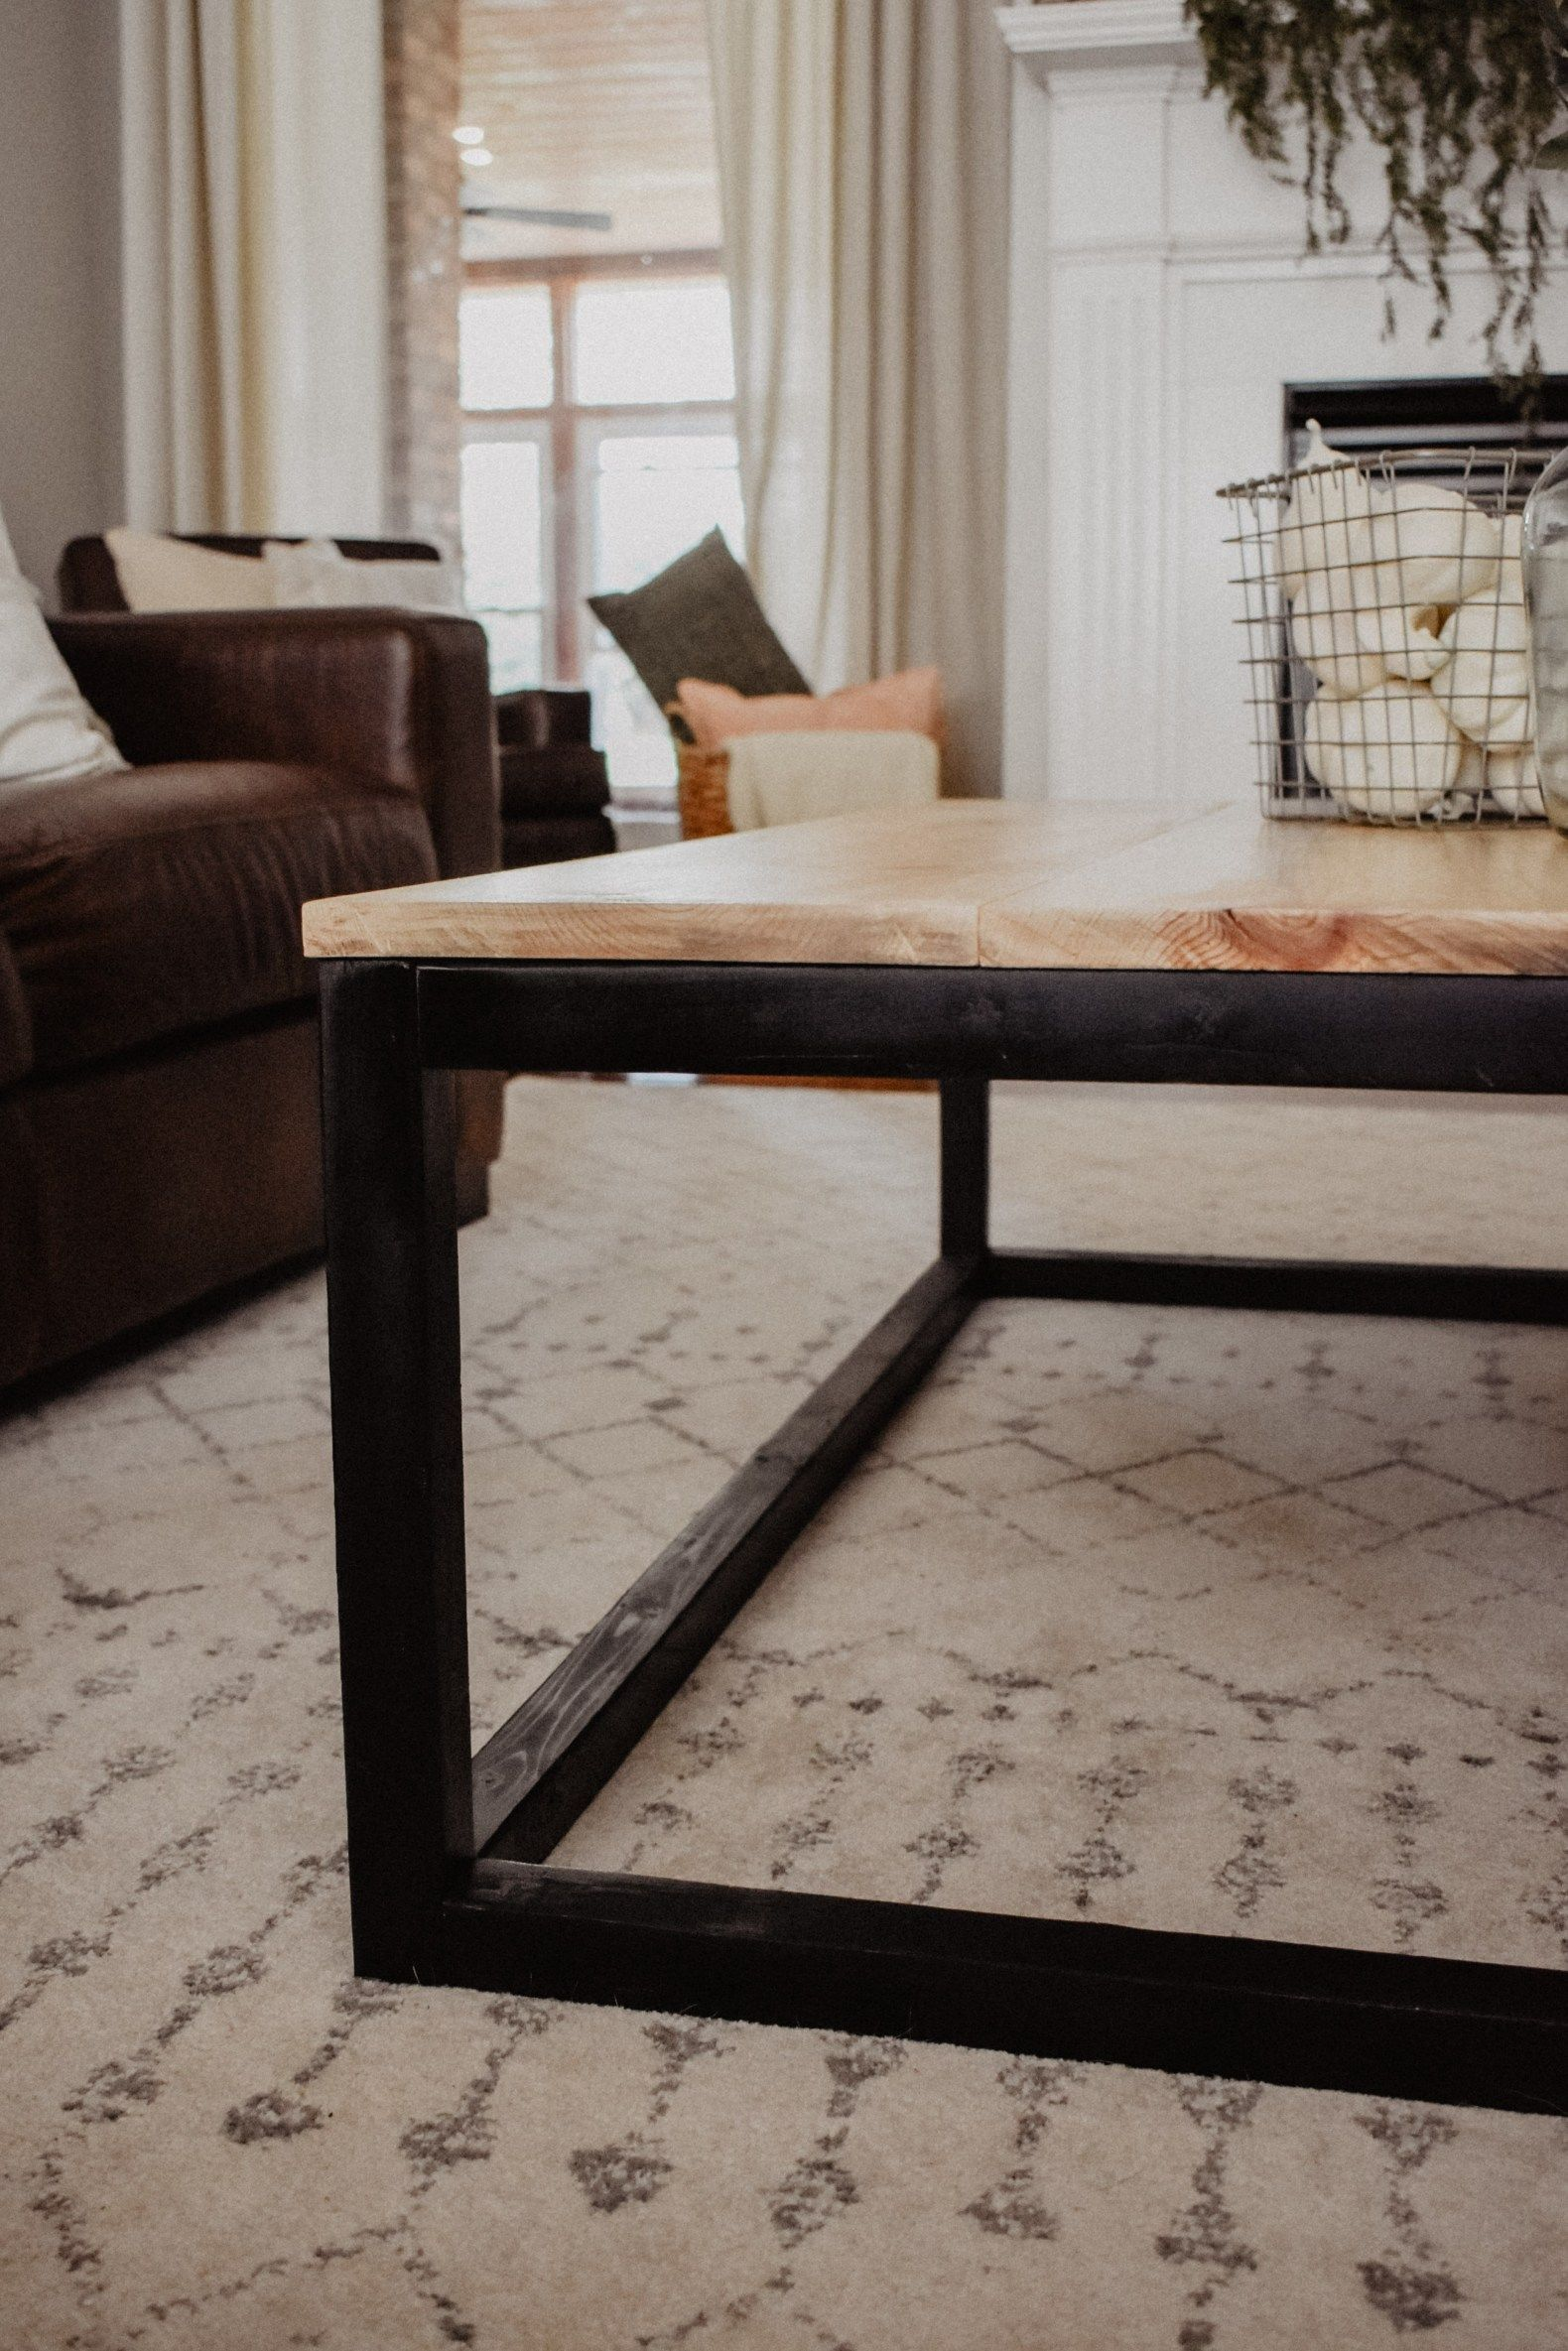 Diy Modern Industrial Coffee Table House On Longwood Lane Modern Industrial Coffee Table Coffee Table Center Table Living Room [ 2369 x 1580 Pixel ]